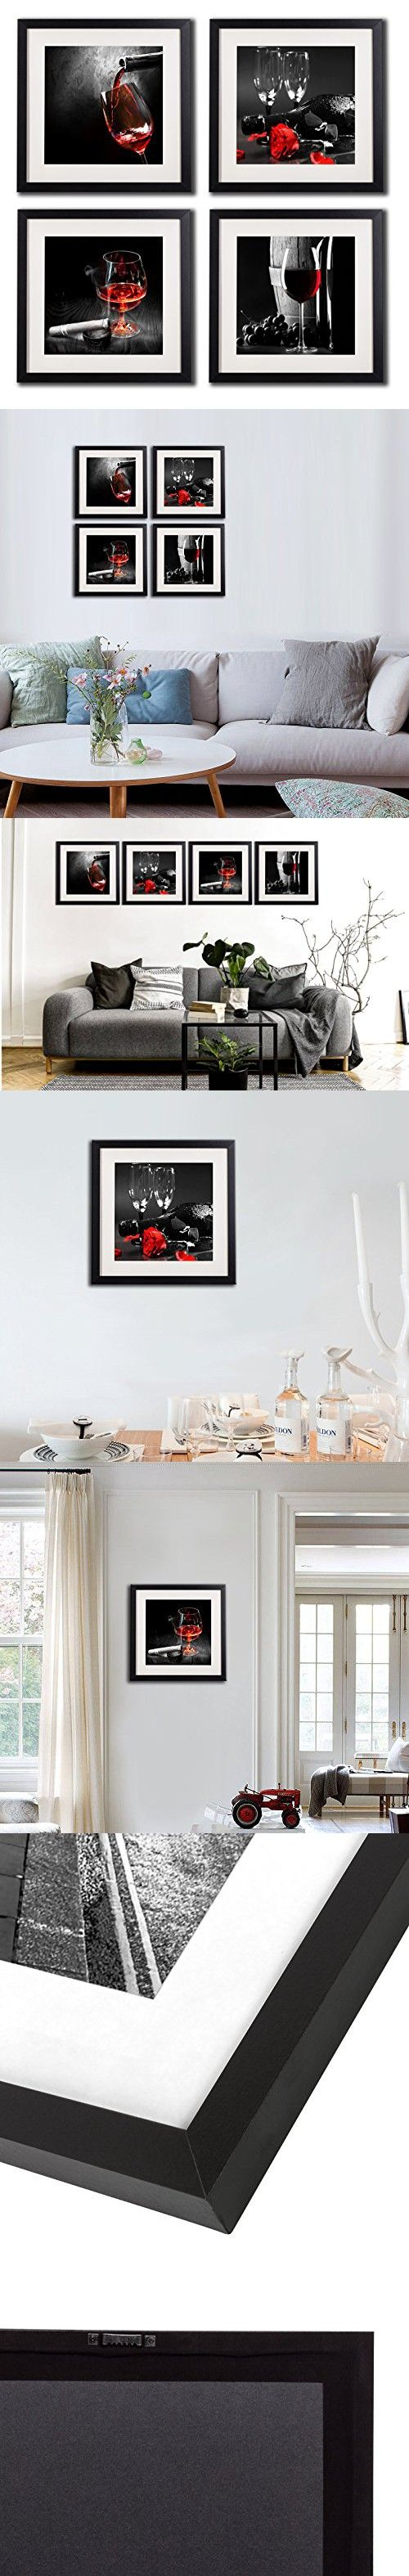 e5d8a4def24 Framed Wine And Grapes Wall Art Prints Posters For Living Room Decorations  Black White And Red